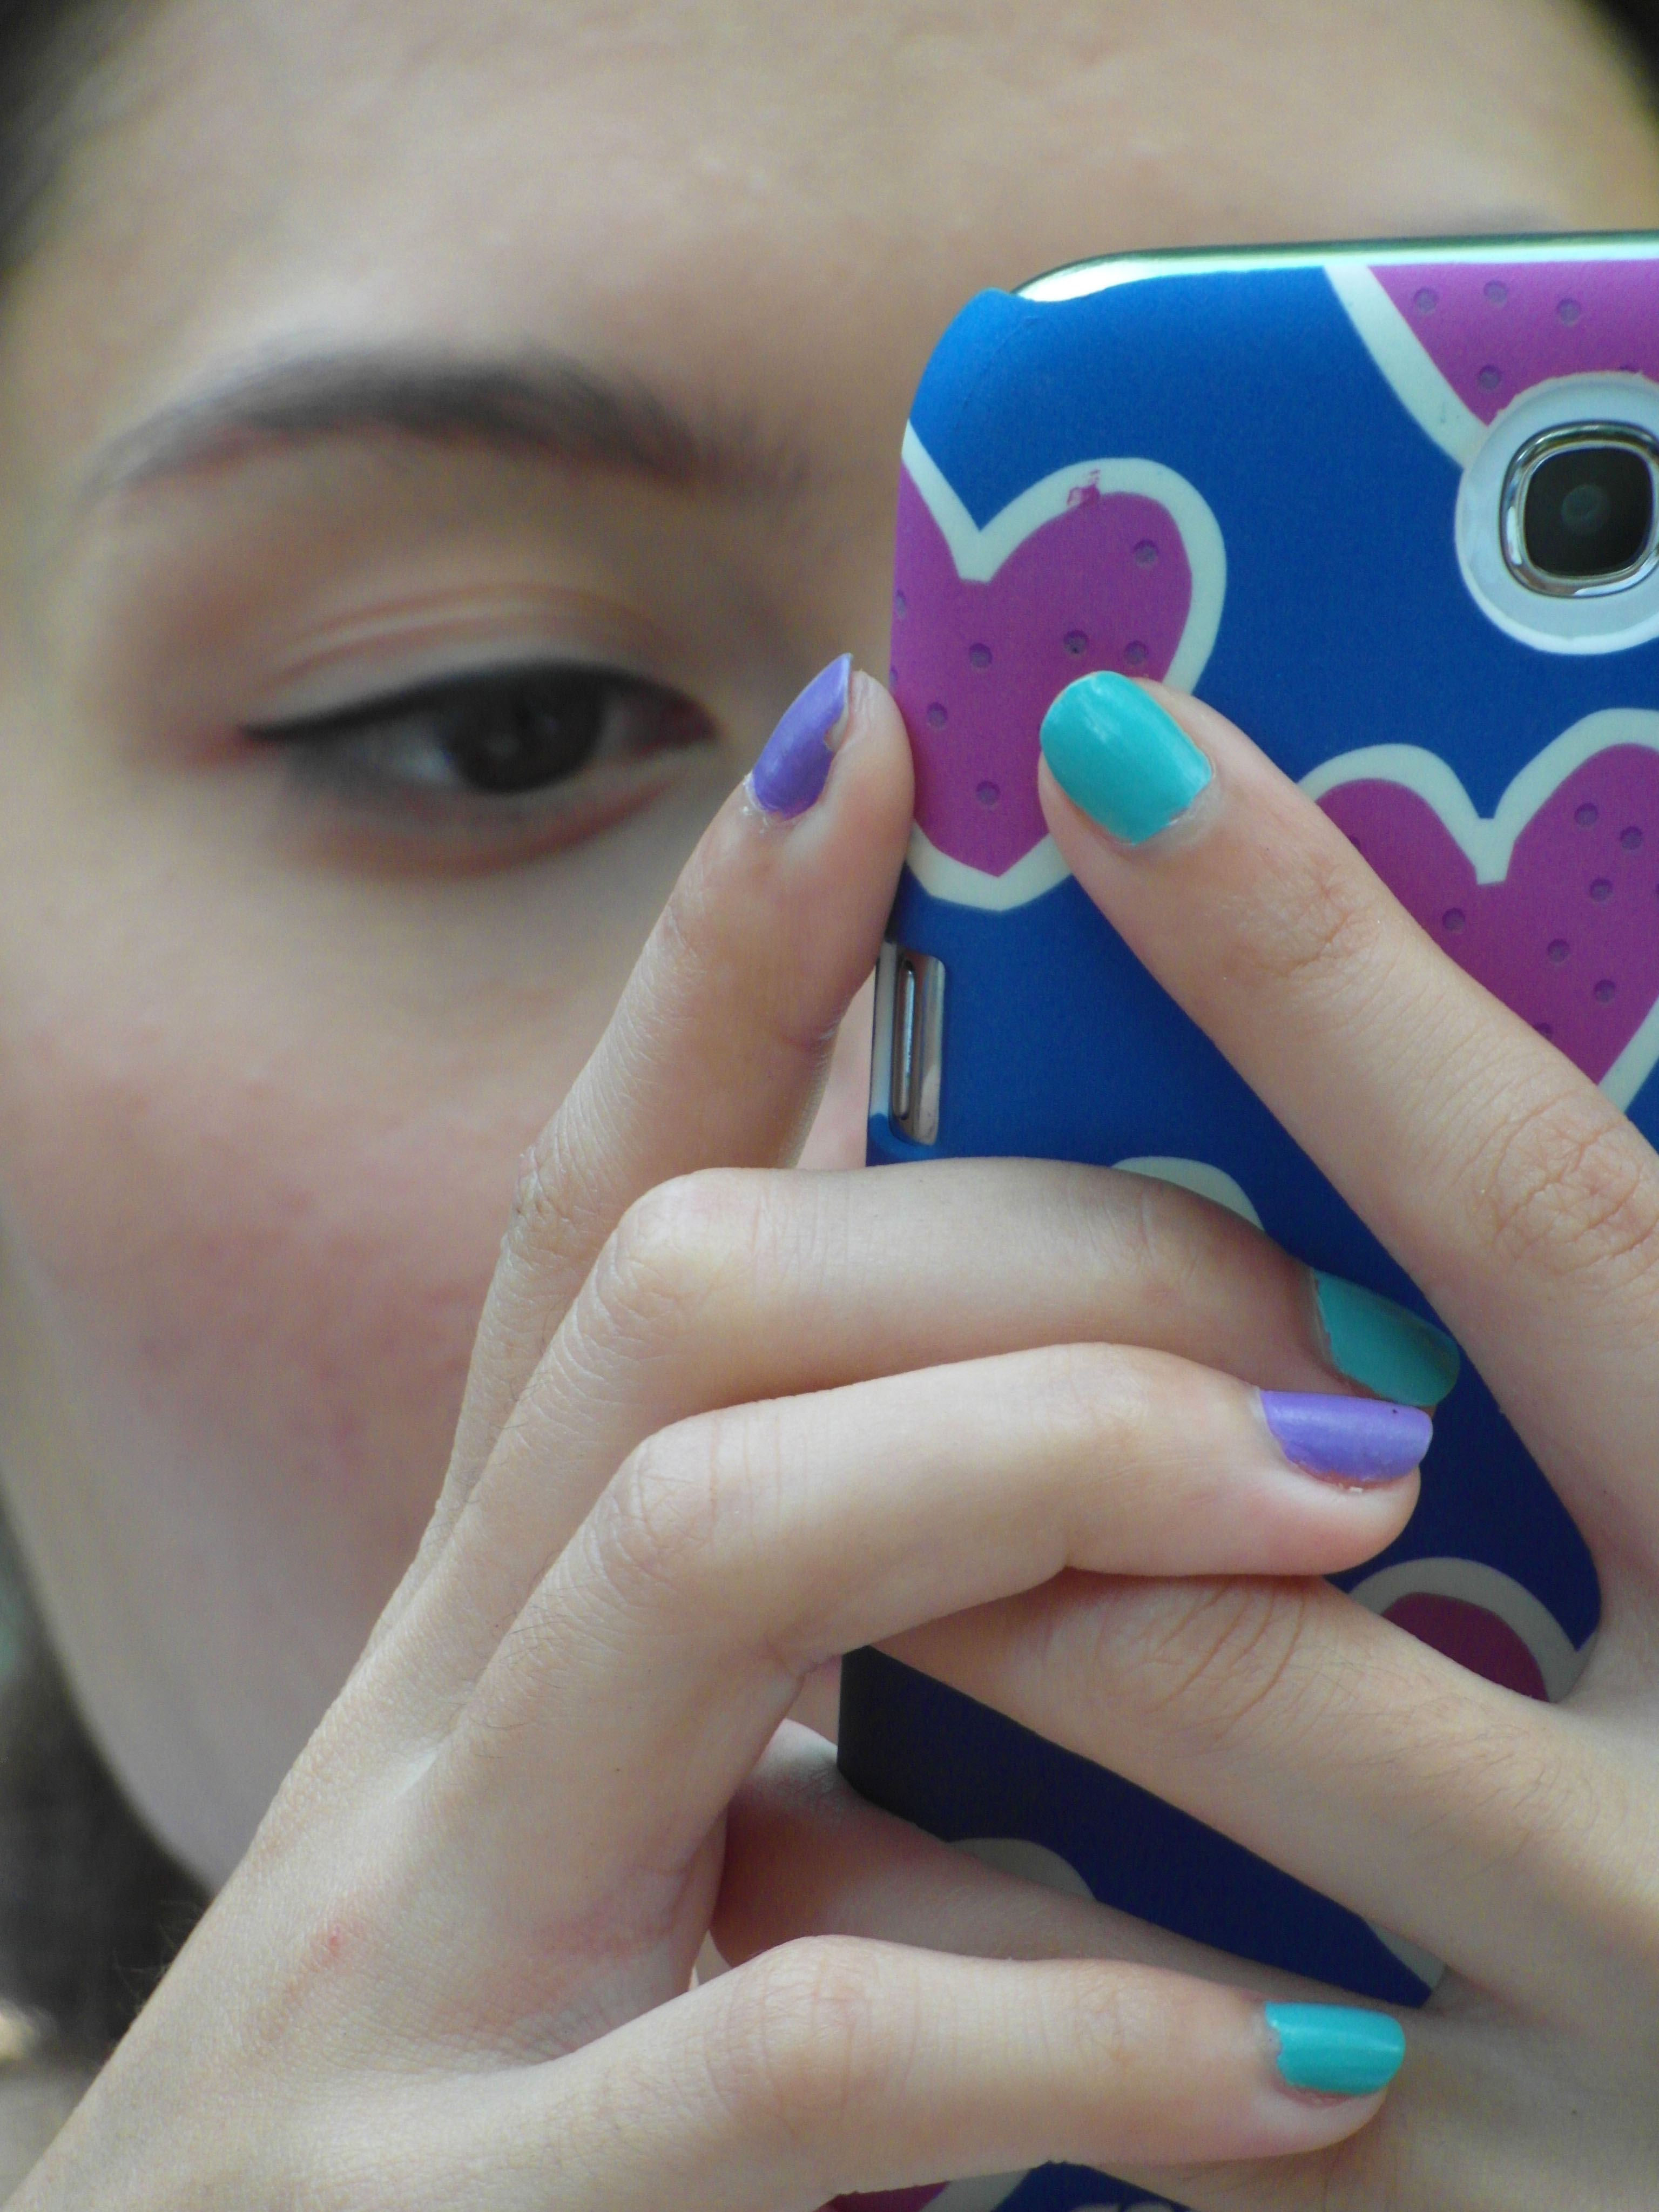 Girl using touch screen phone photo